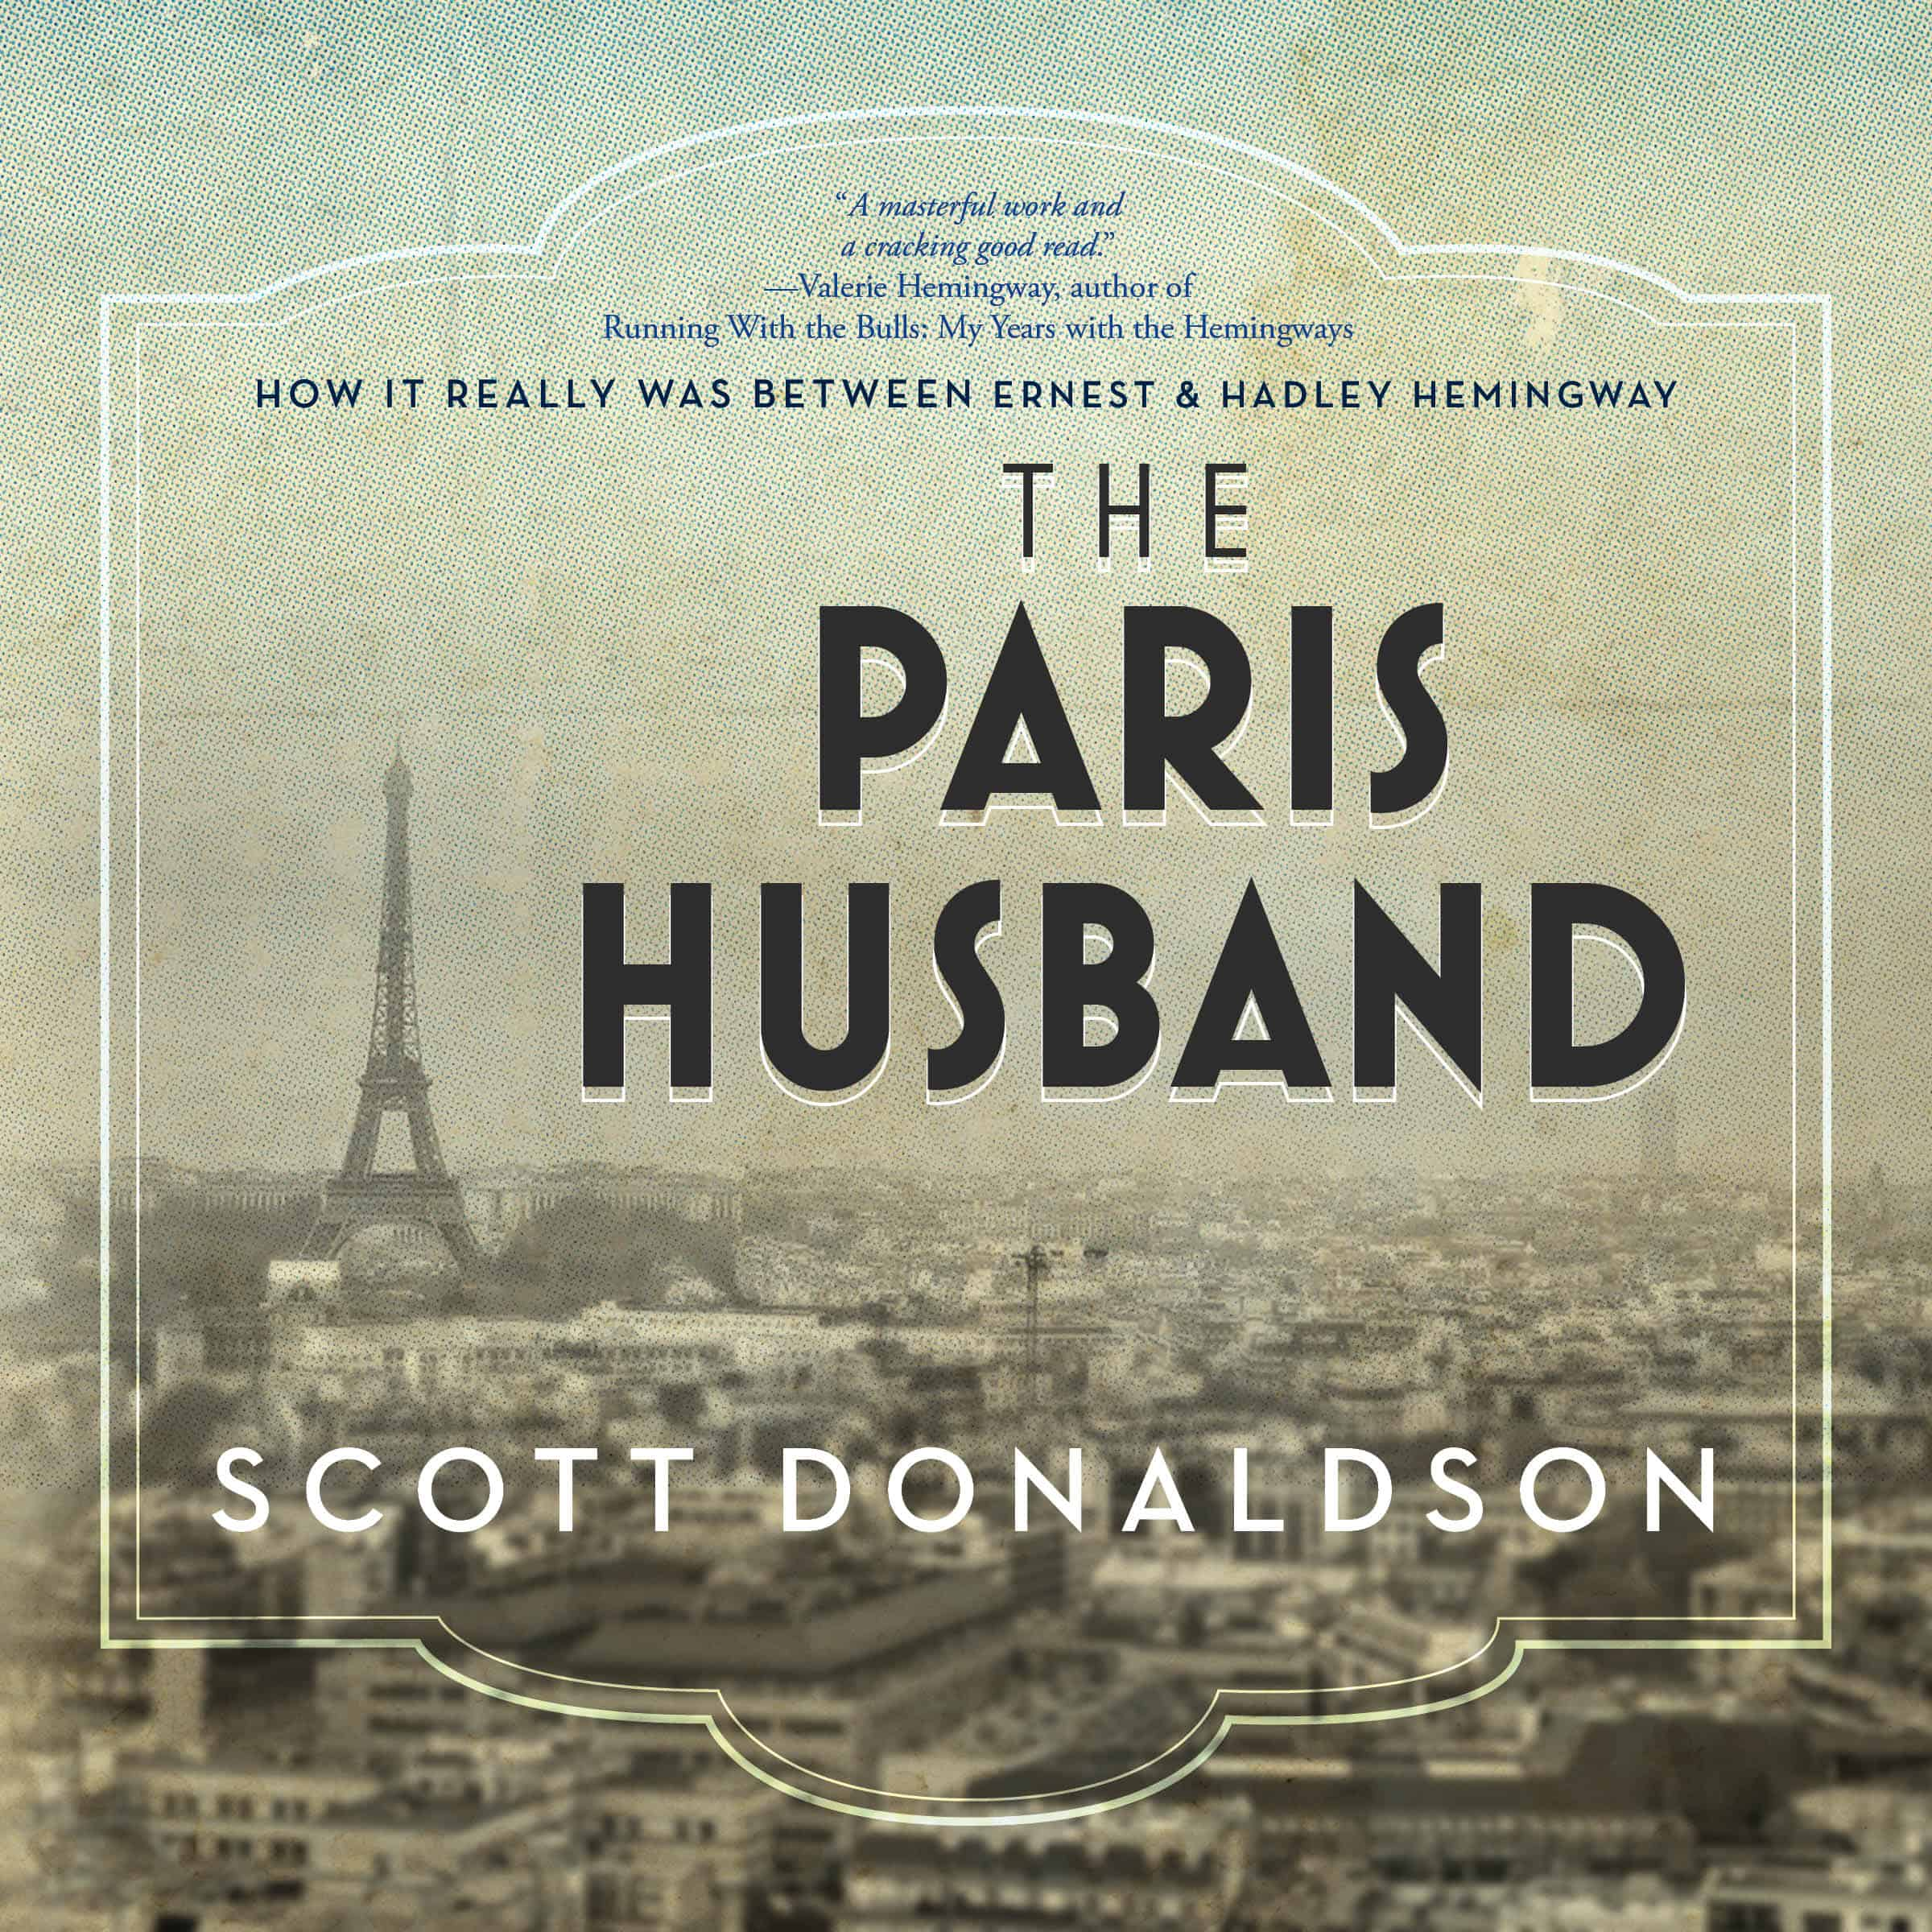 scottdonaldson theparishusband audiobook - Simply Charly Announced Today the Release of its Critically Acclaimed Book About Ernest Hemingway